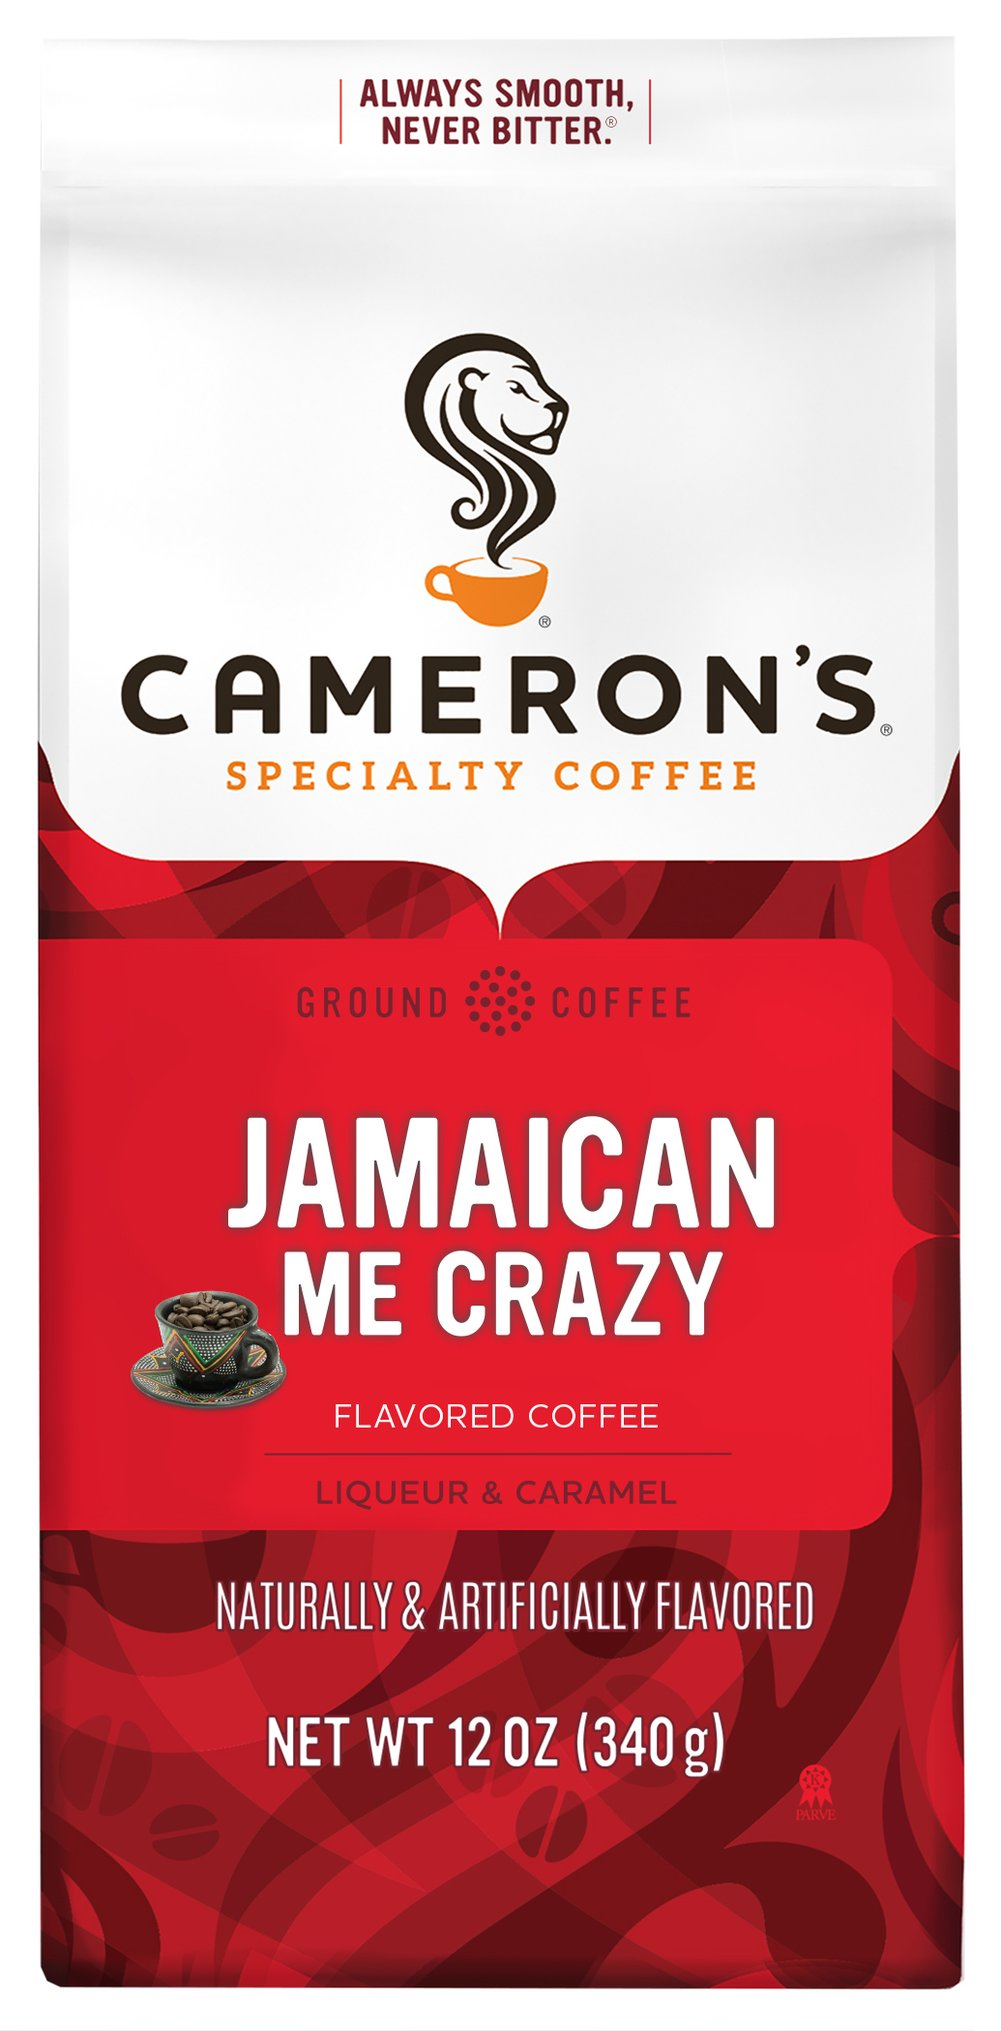 Jamaican Me Crazy Ground Coffee <p><strong>From the Manufacturer's Label:</strong></p><p><strong>Made from 100% Arabica Beans, Kosher</strong></p><p><strong>Flavor:</strong> Caramel, vanilla and Mexican liqueor</p><p><strong>Freshness:</strong> Exclusive packaging insures maximum freshness.</p><p>Jamaican Me Crazy a perfect combination of caramel, vanillla and Mexican liqueor. Our Arabica be